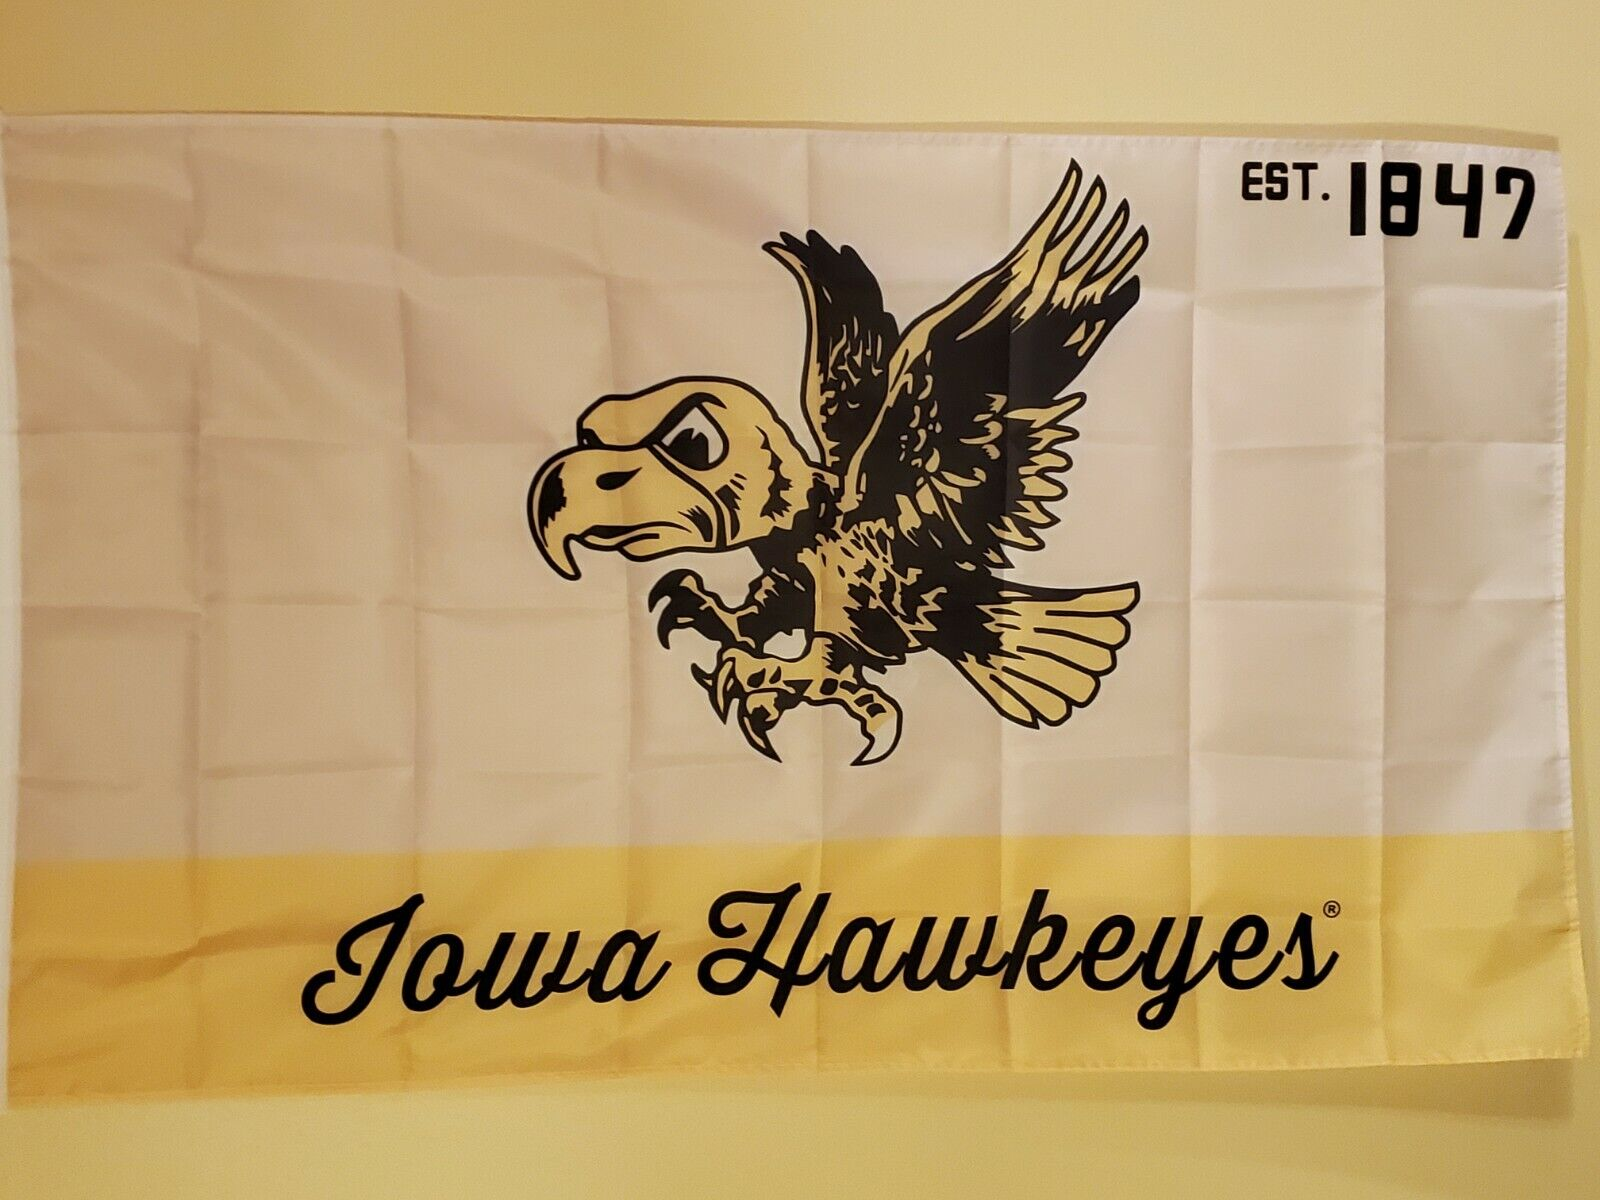 University Iowa Hawkeyes Vintage Style Flag  # 123